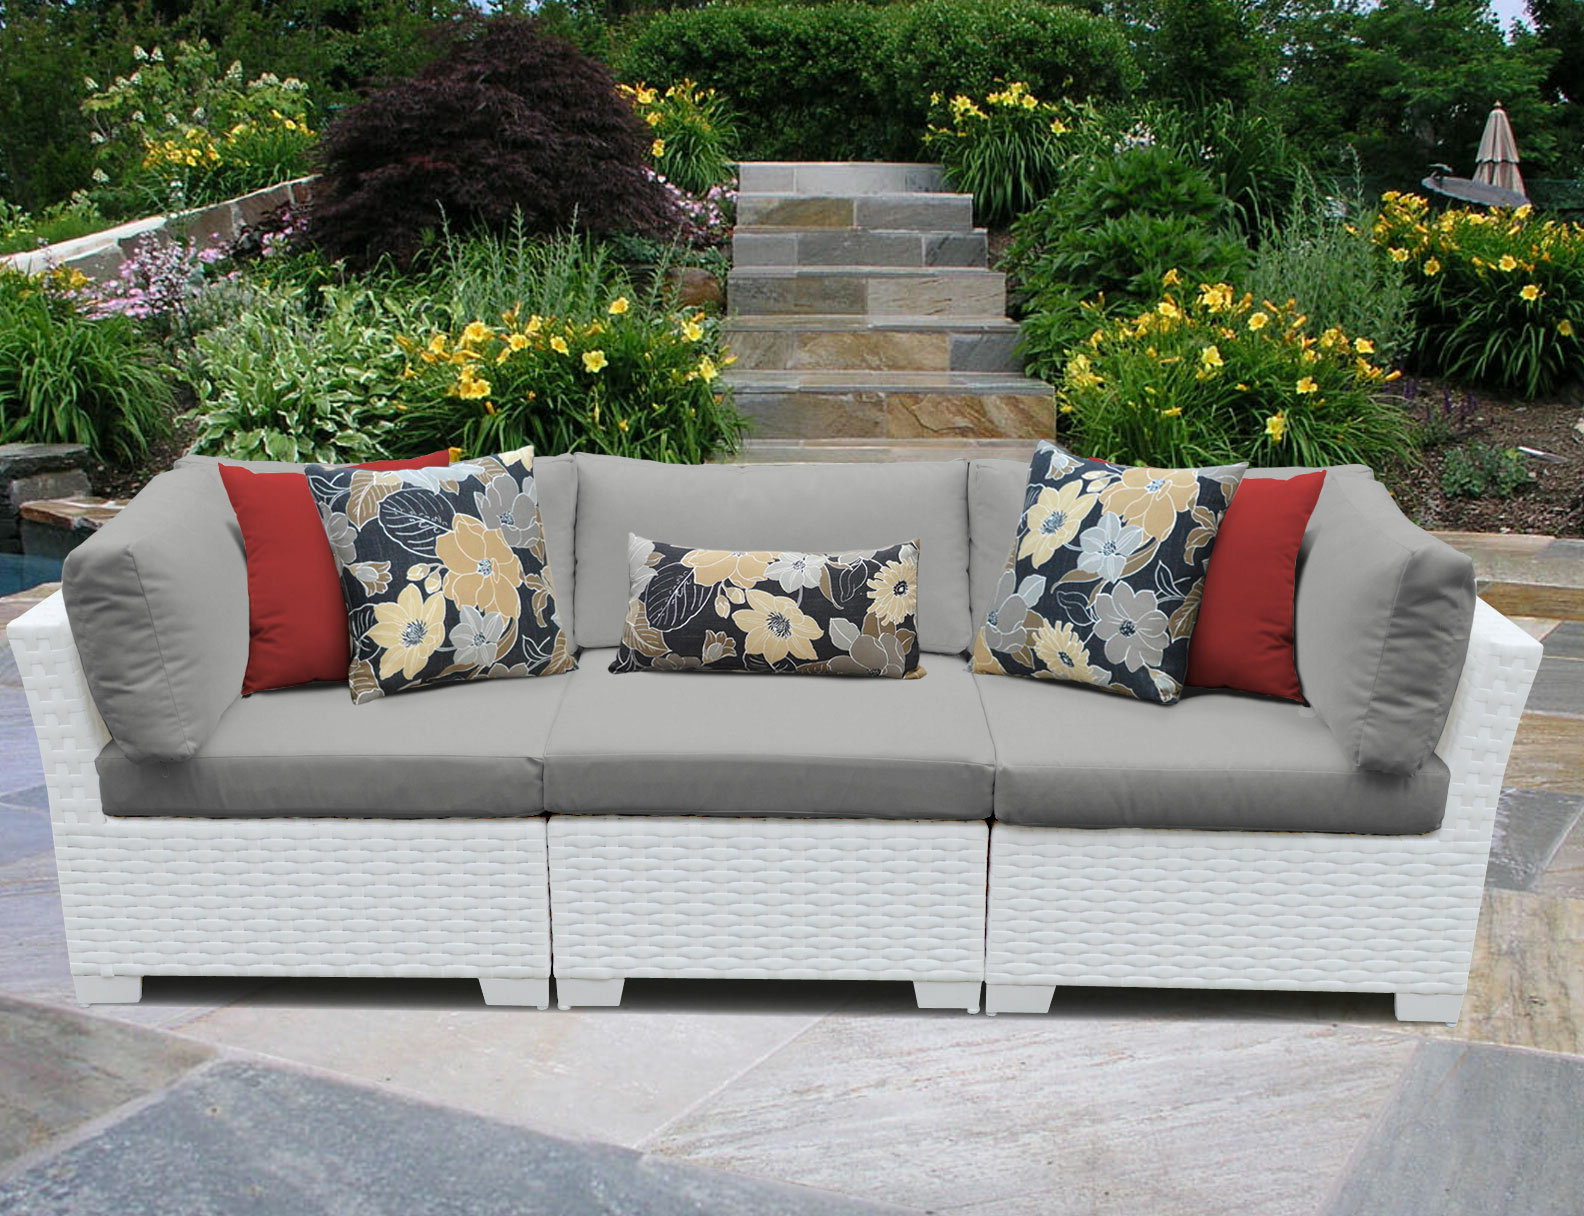 Famous Monaco Patio Sofa With Cushions Throughout Vallauris Storage Patio Sectionals With Cushions (View 19 of 25)